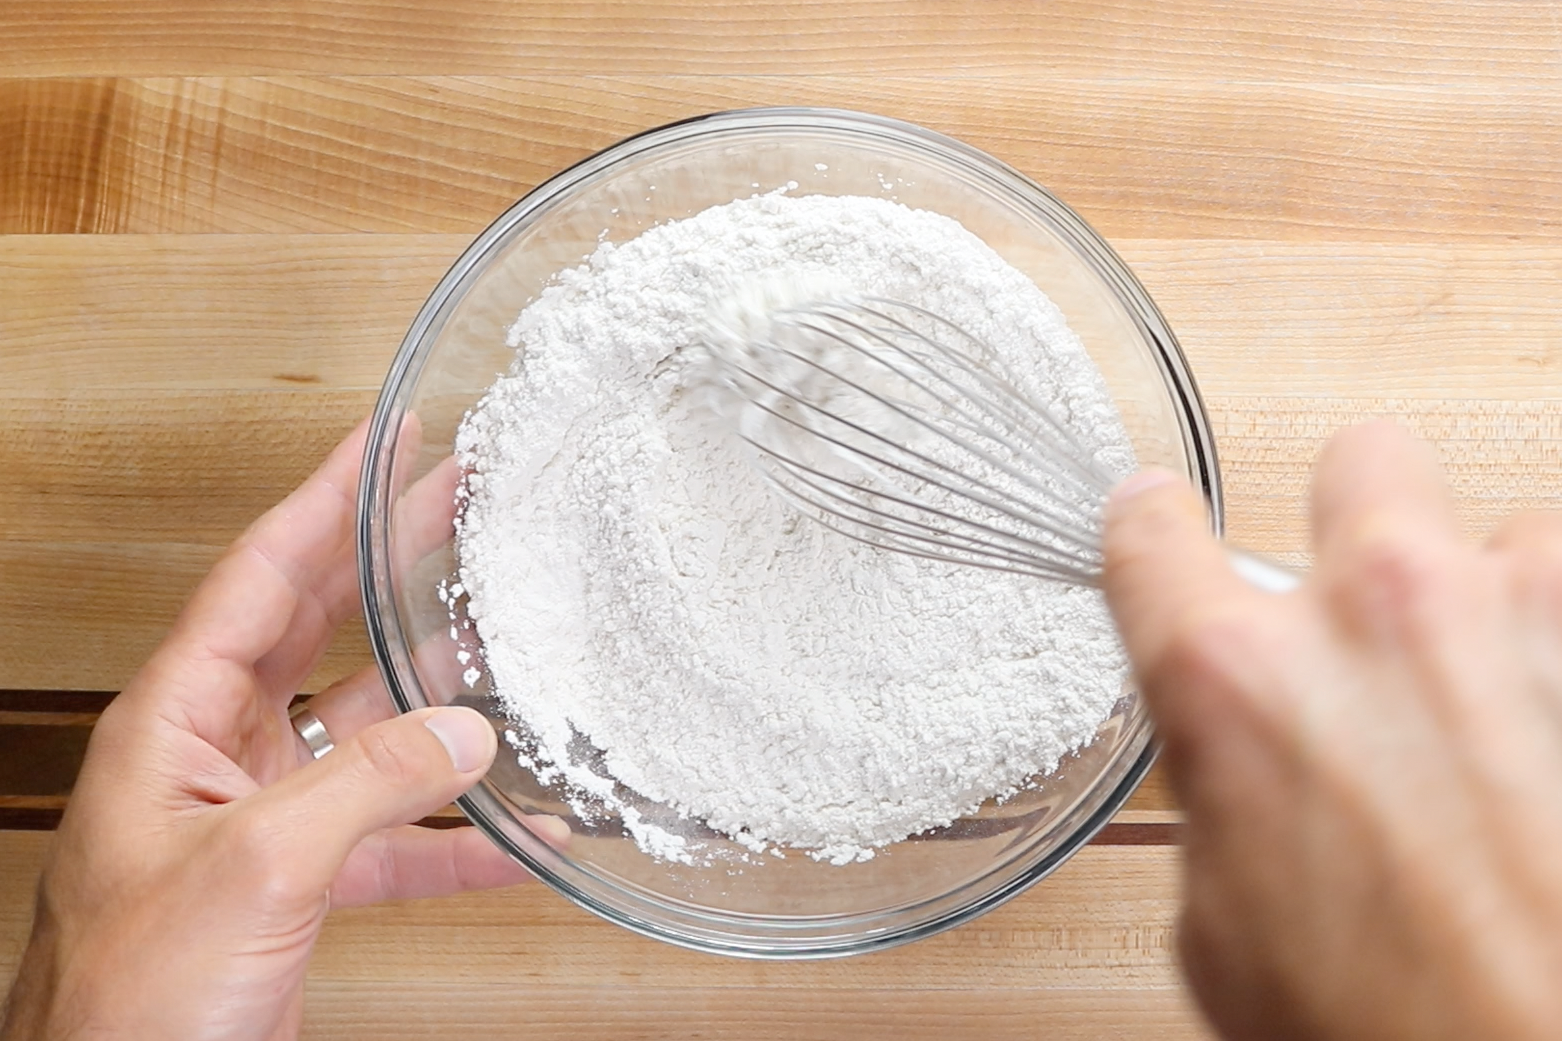 2. In a large bowl combine the flour, salt, and baking powder. -